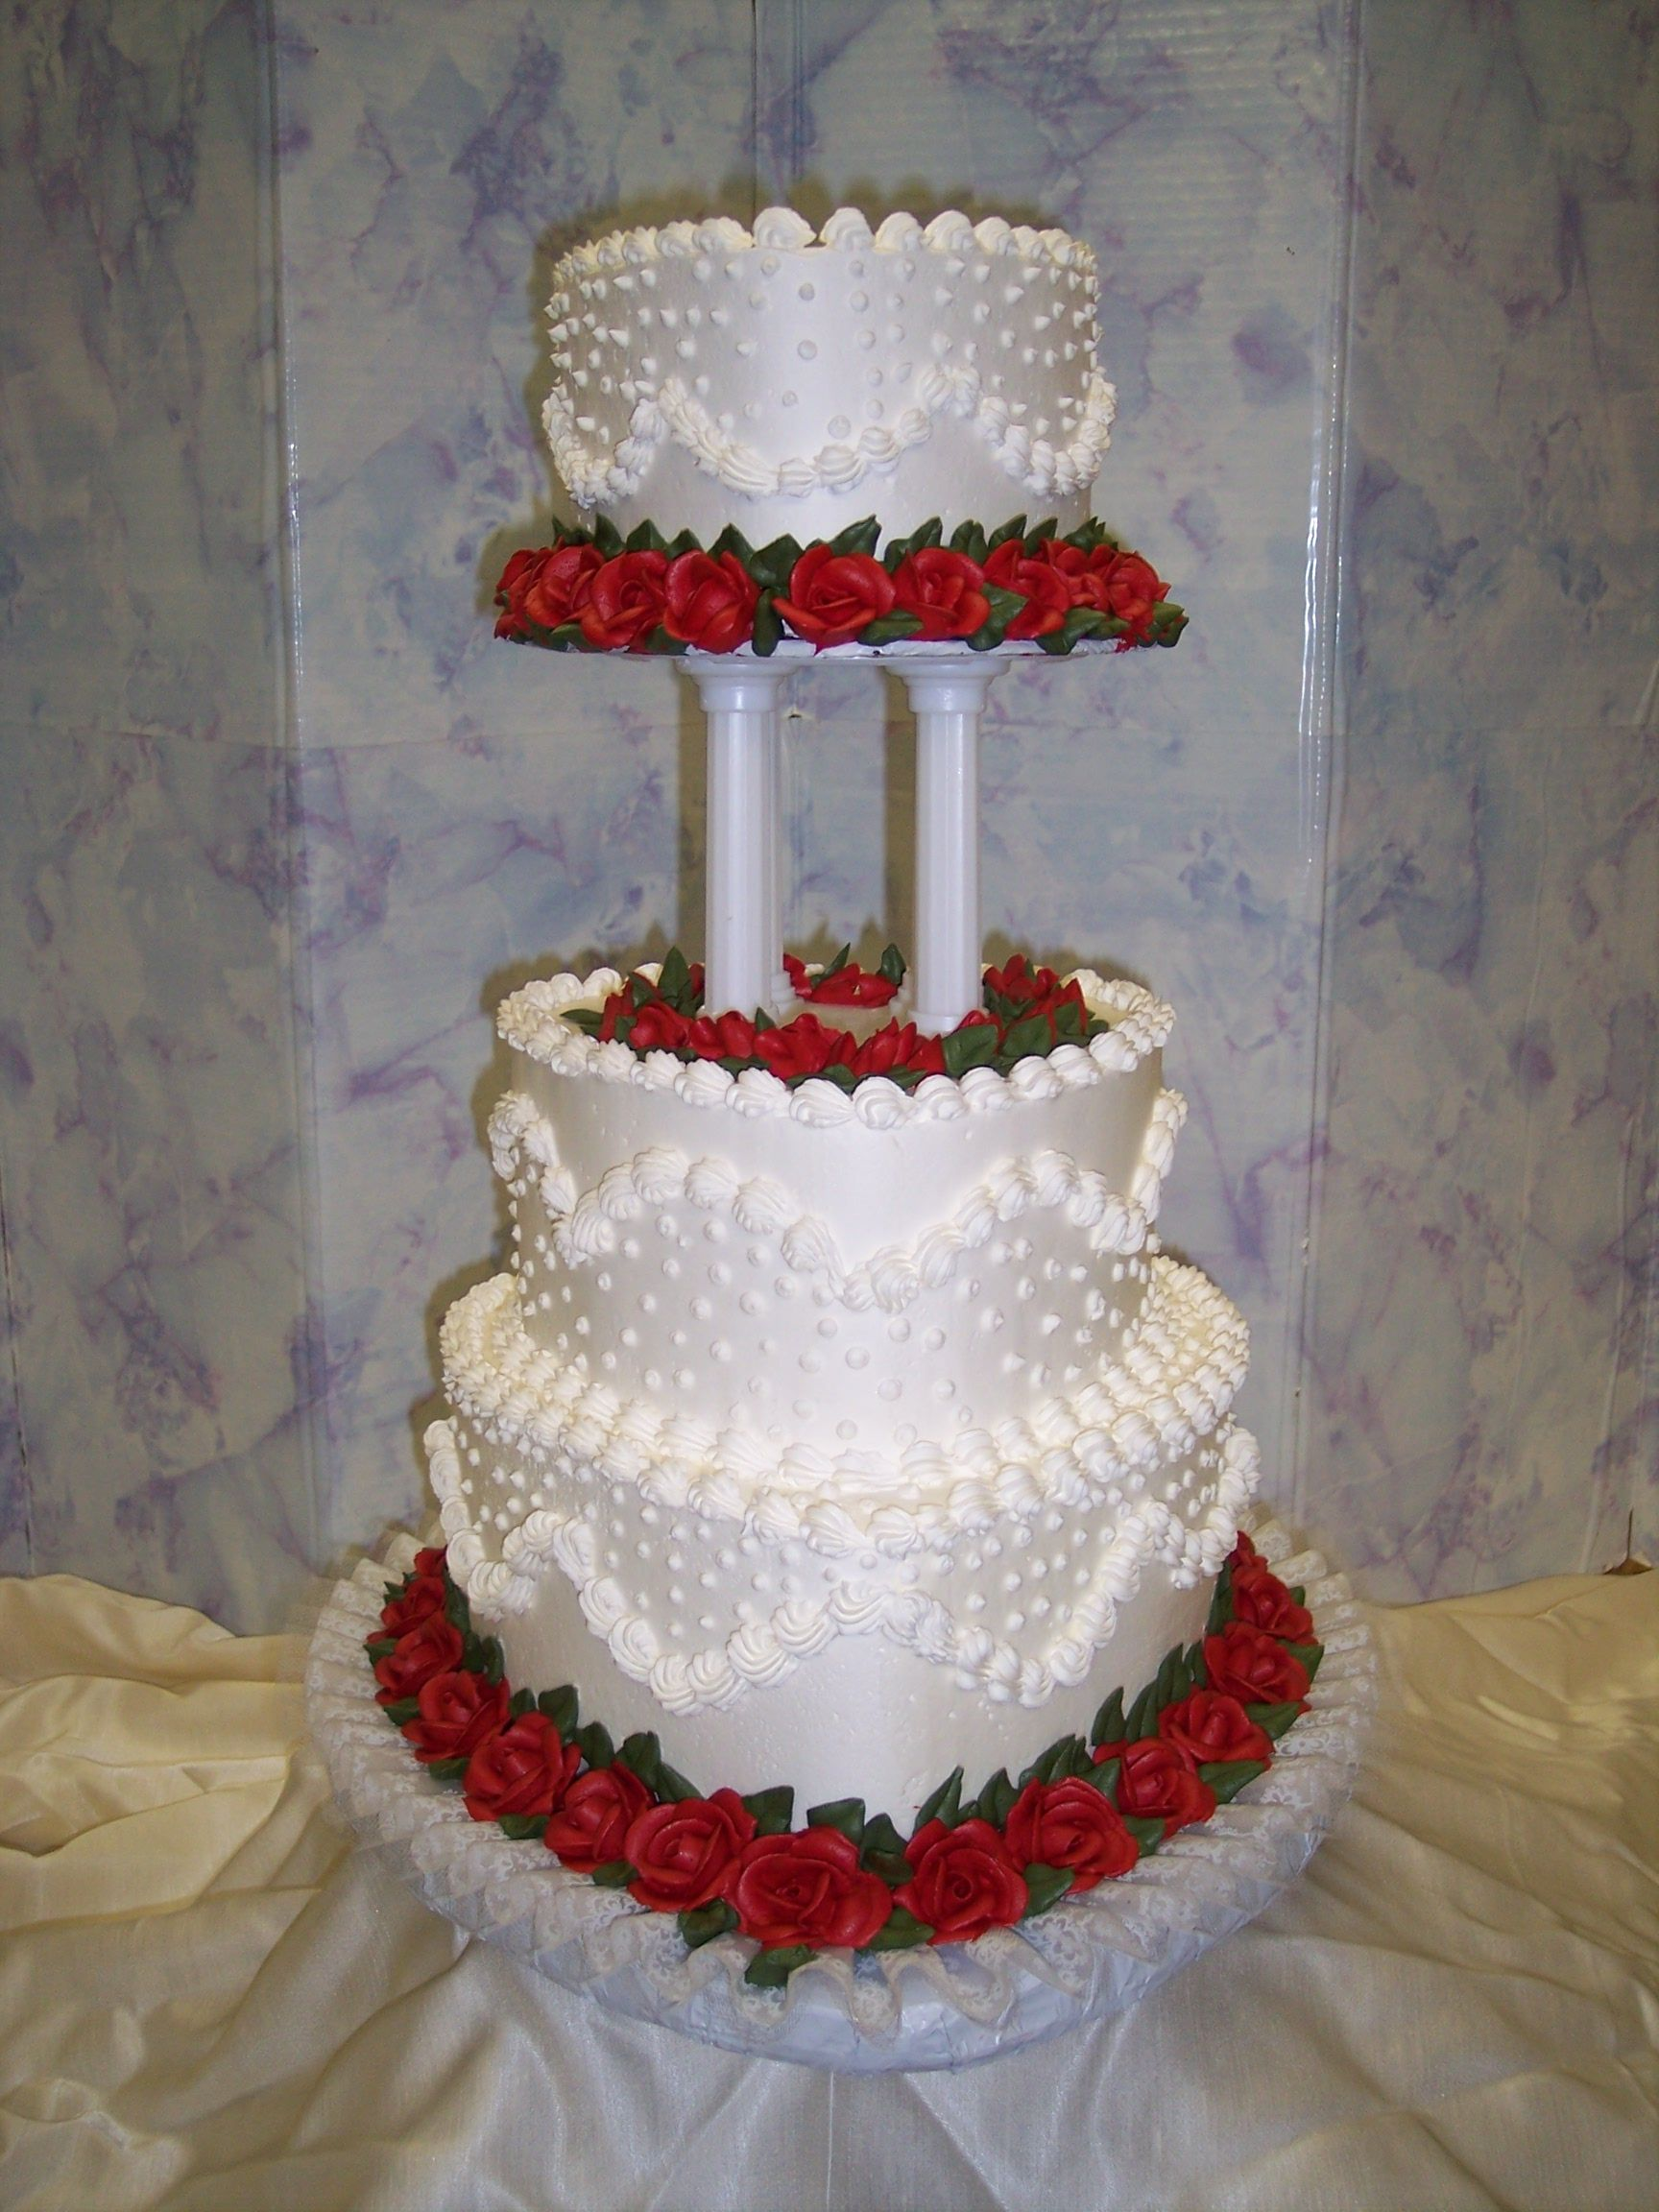 cheap wedding cakes wedding cakes heart shaped wedding cakes instead of the red you can substitute